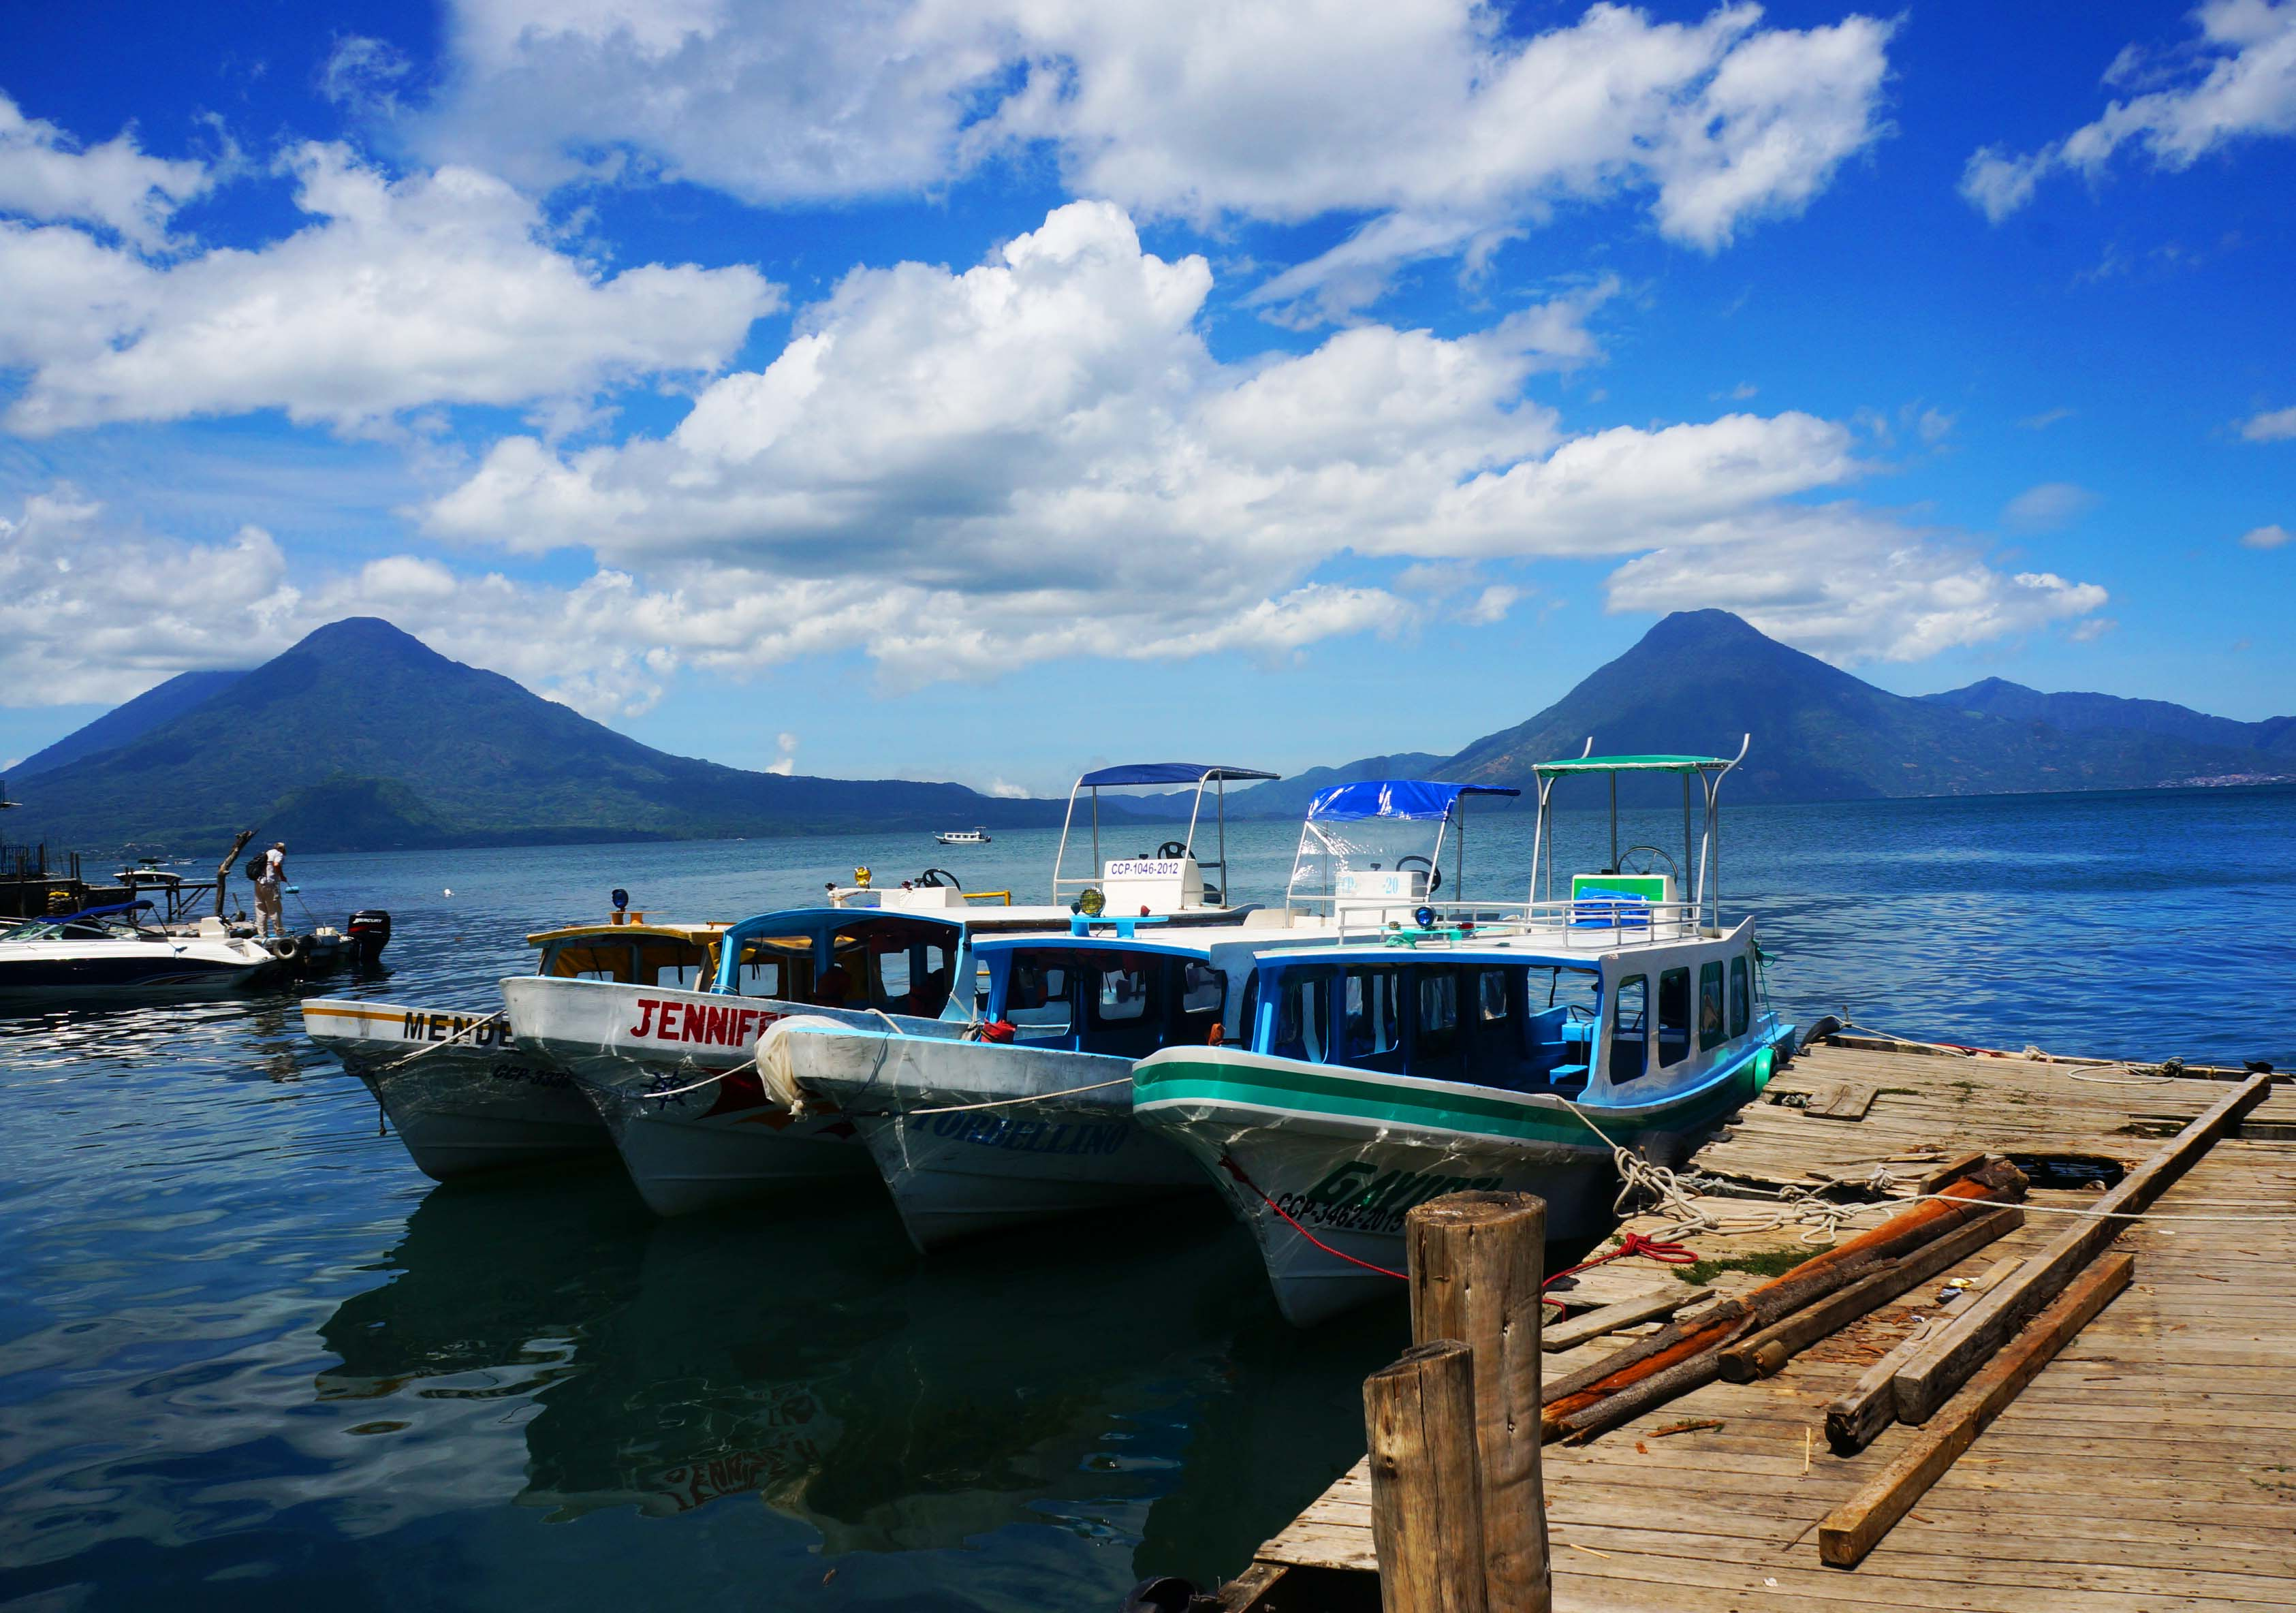 Day Tour of Lake Atitlán in Guatemala Offers Stunning Landscapes and Mayan Culture